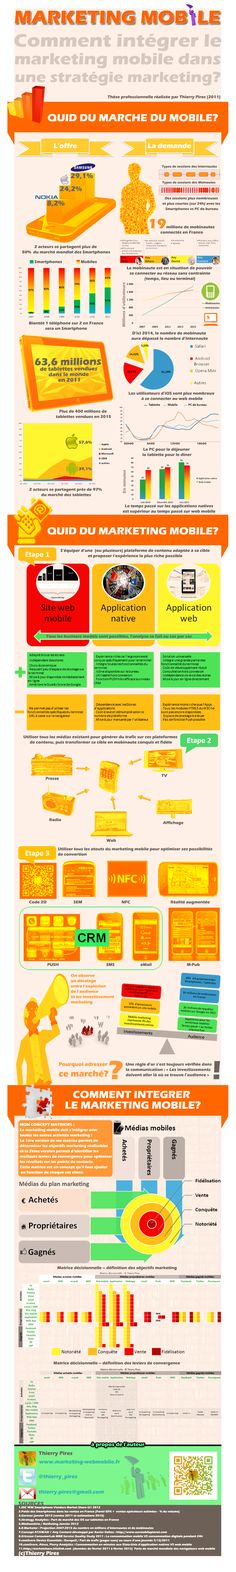 Infographie-integration-marketing-mobile-Thierry-Pires